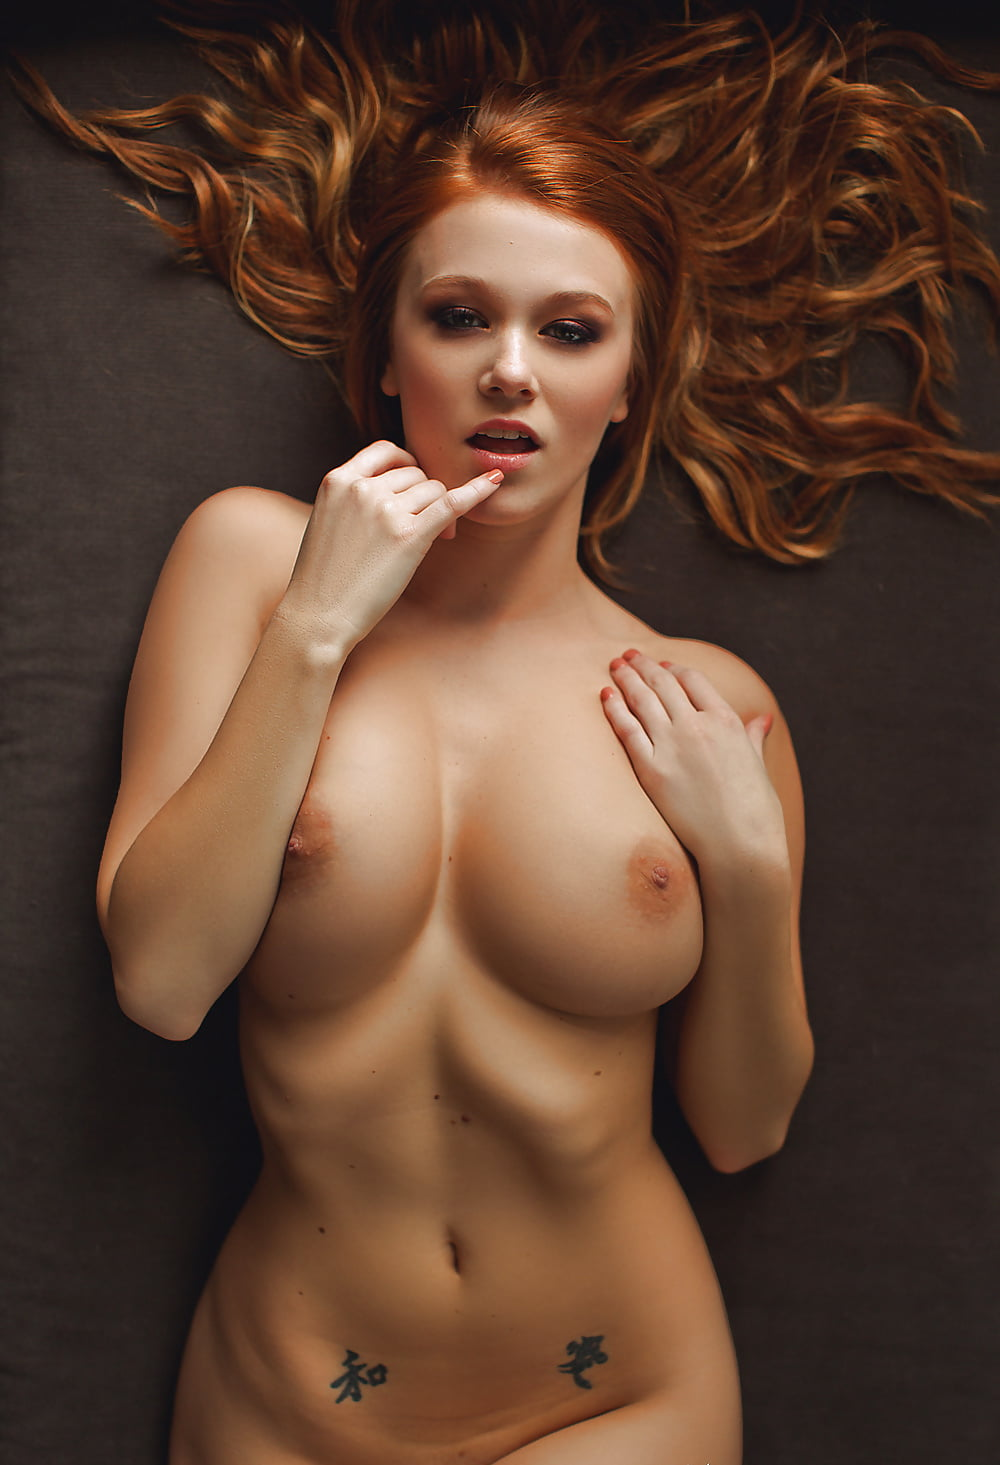 Playboy red haired women